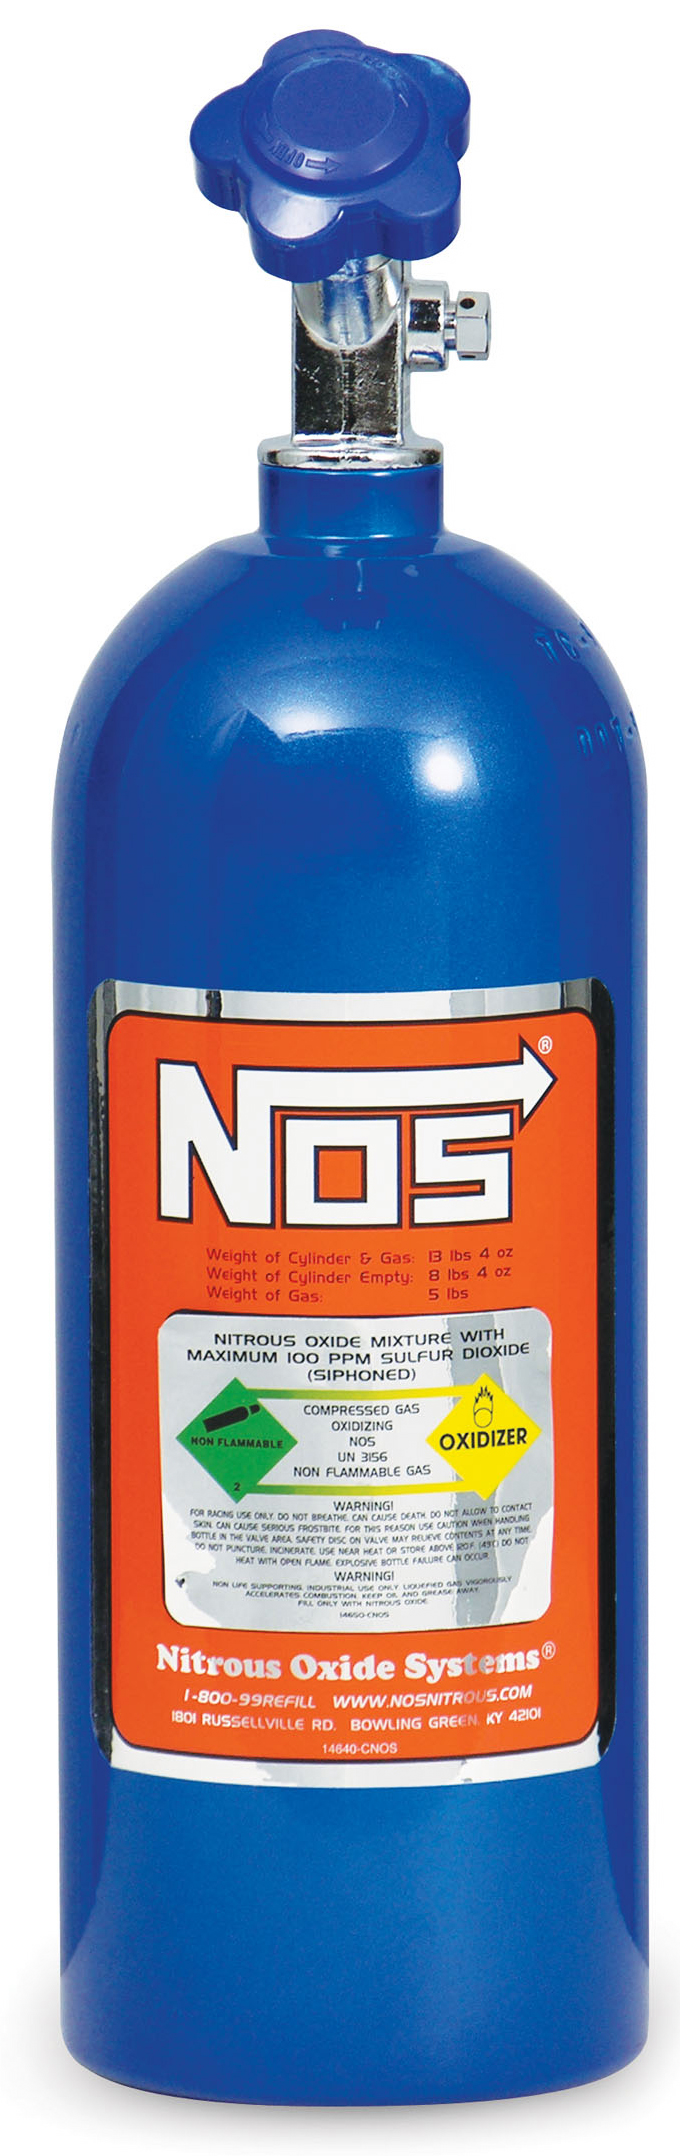 Nos Energy Drink Nitrous Oxide